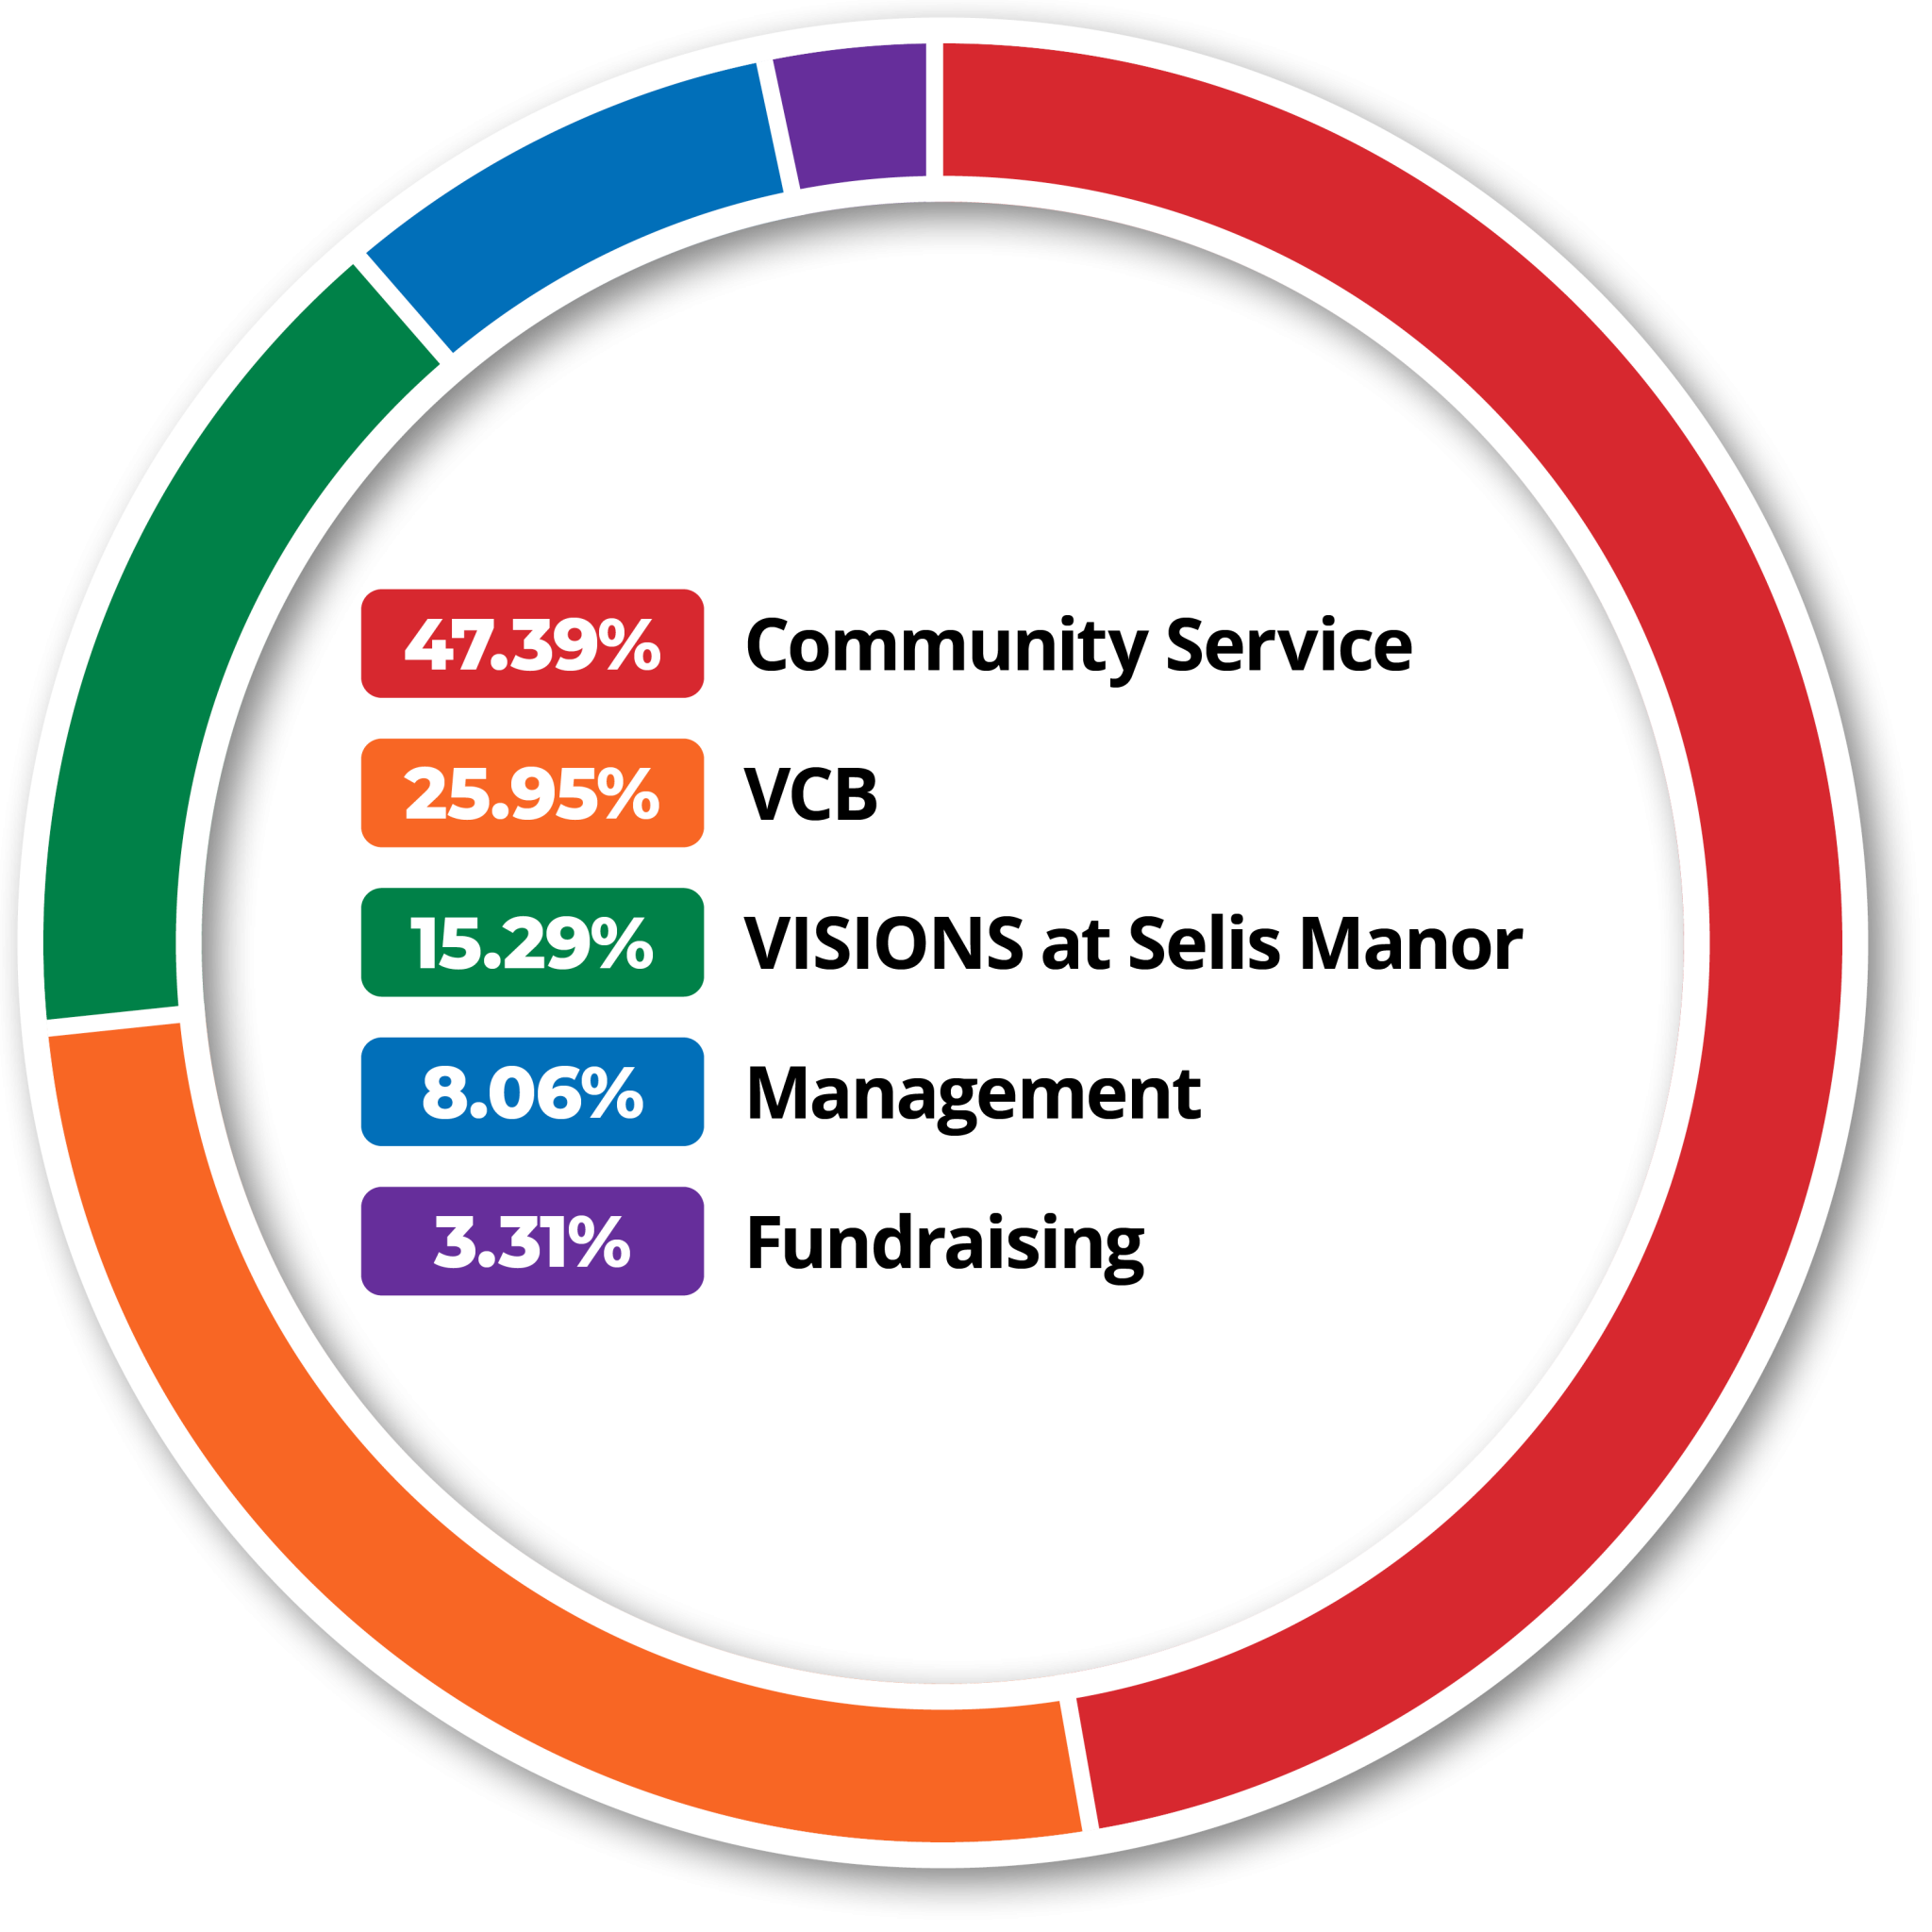 Donut chart: VISIONS Expenses. Community Services: 47.39% or $4,906,239. VISIONS Center on Blindness: 25.95% or $2,687,056. VISIONS at Selis Manor: 15.29% or $1,582,753. Program services account for 88.63% of VISIONS expenses, or $9,176,048. Management and General: 8.06% or $833,996. Fundraising: 3.51% or $343,283. Supporting services account for 11.37% of VISIONS expenses, or $1,177,279.